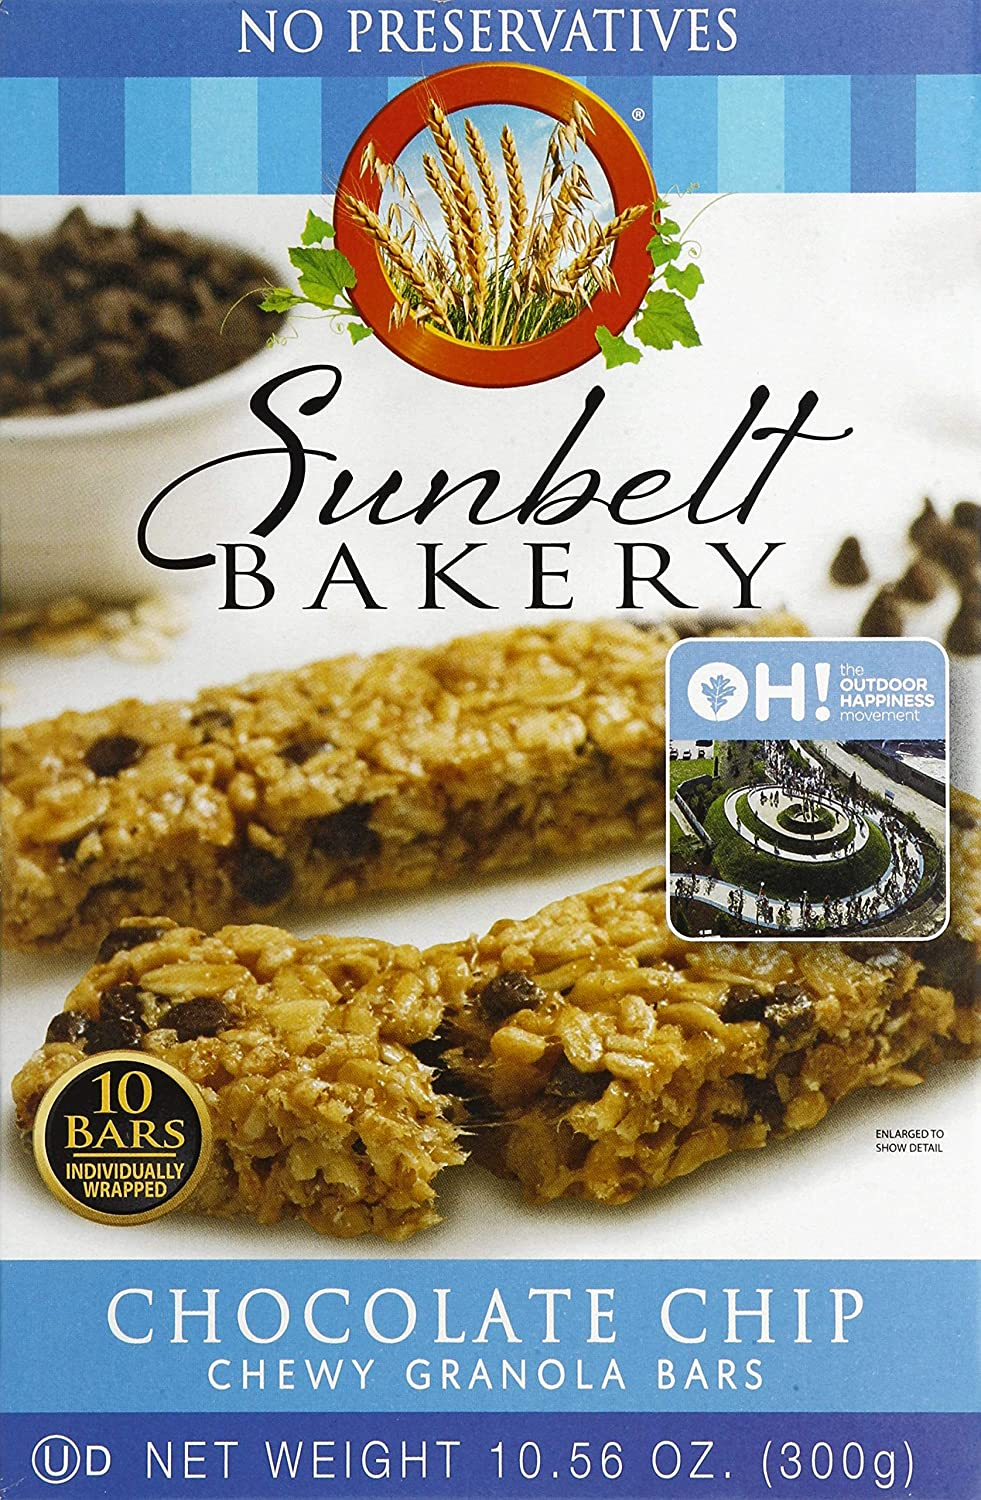 Sunbelt Bakery Chewy Chocolate Chip Granola Bars, 1.1 Ounce Bars, 80 Count